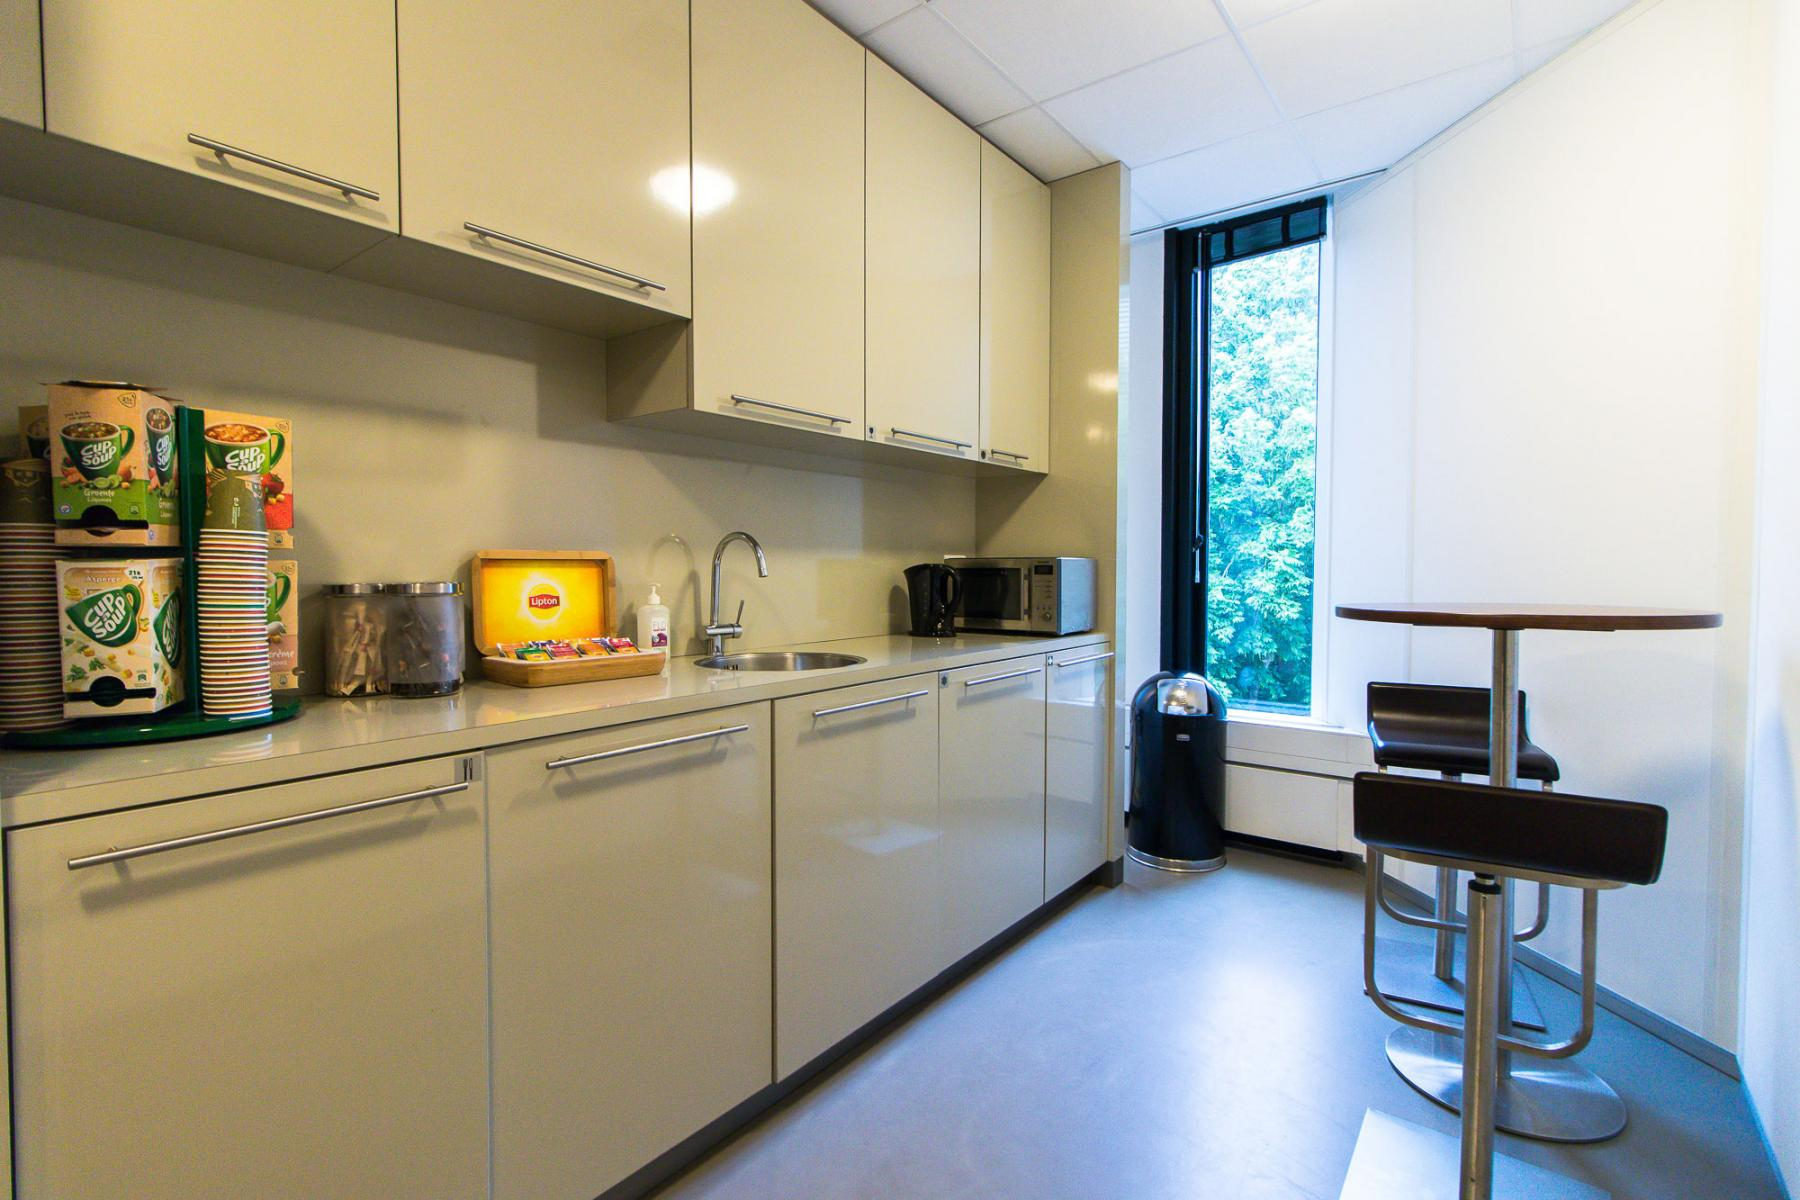 Joint pantry for tenants at the Cuserstraat